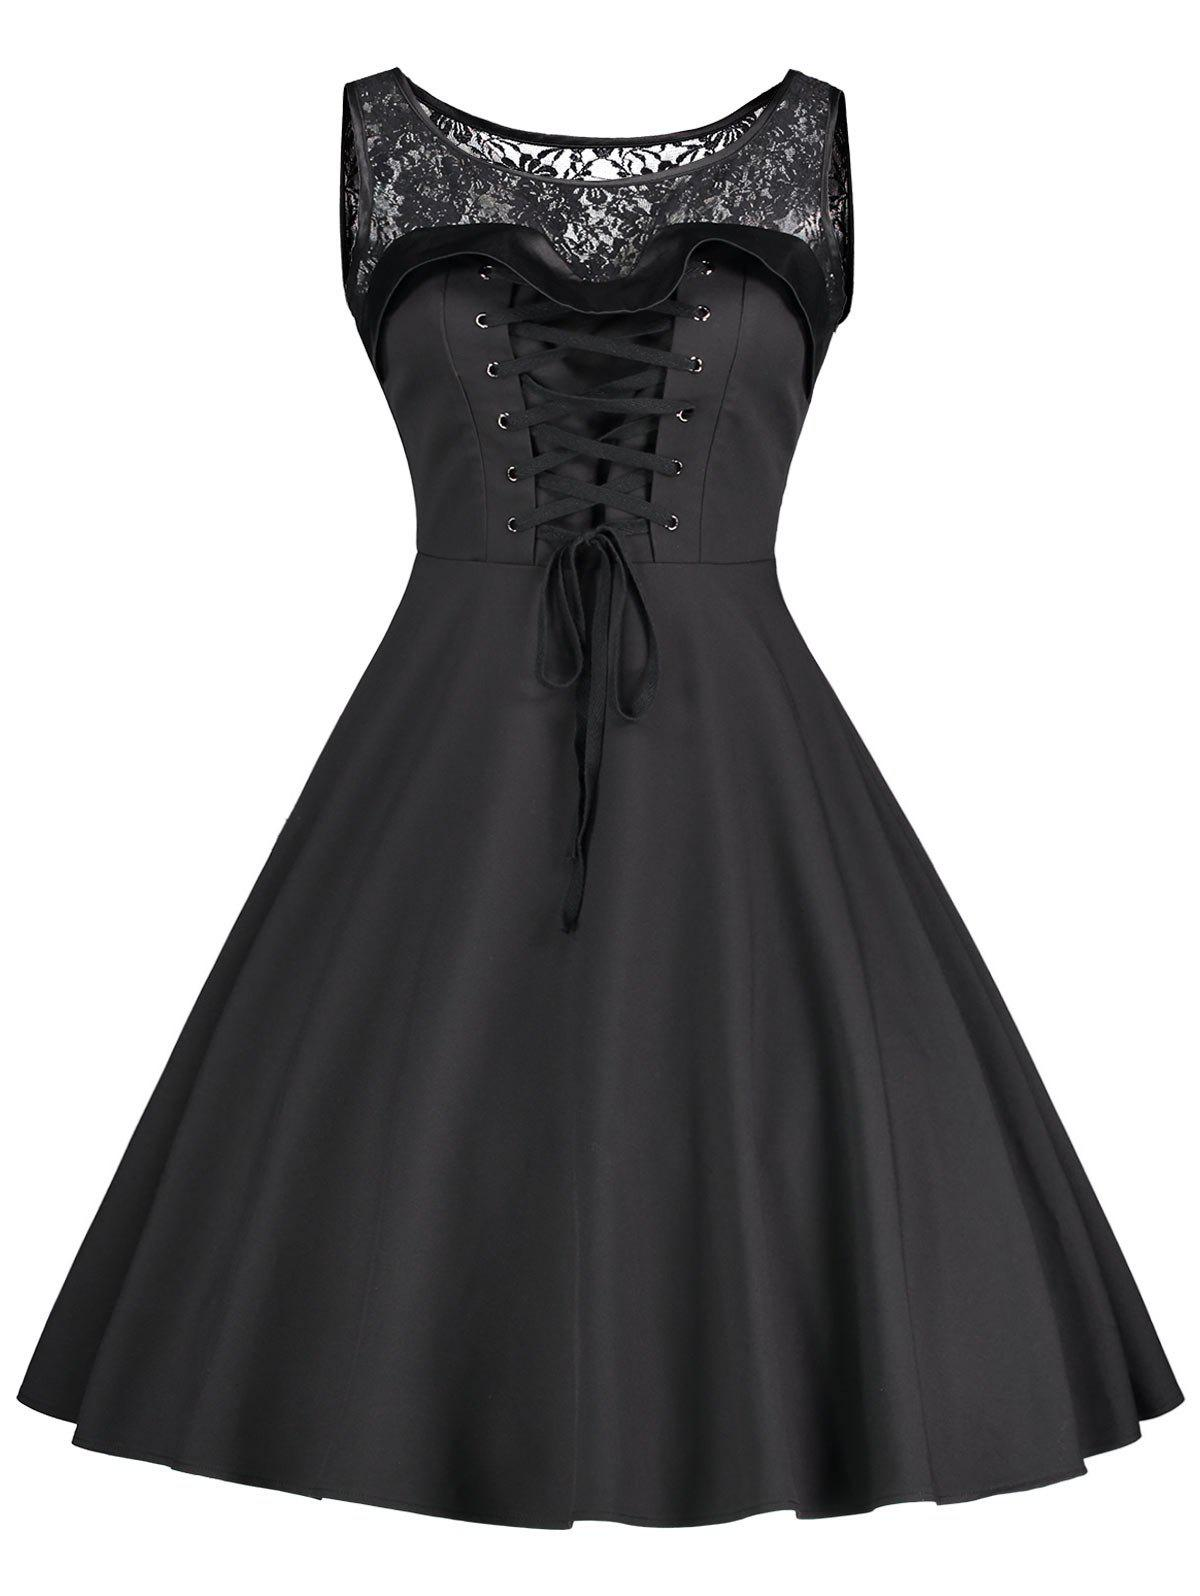 Sleeveless Lace Up Fit and Flare DressWOMEN<br><br>Size: 2XL; Color: BLACK; Style: Vintage; Material: Polyester; Silhouette: A-Line; Dresses Length: Mid-Calf; Neckline: Round Collar; Sleeve Length: Sleeveless; Embellishment: Lace; Pattern Type: Solid Color; With Belt: No; Season: Fall,Spring; Weight: 0.4000kg; Package Contents: 1 x Dress;